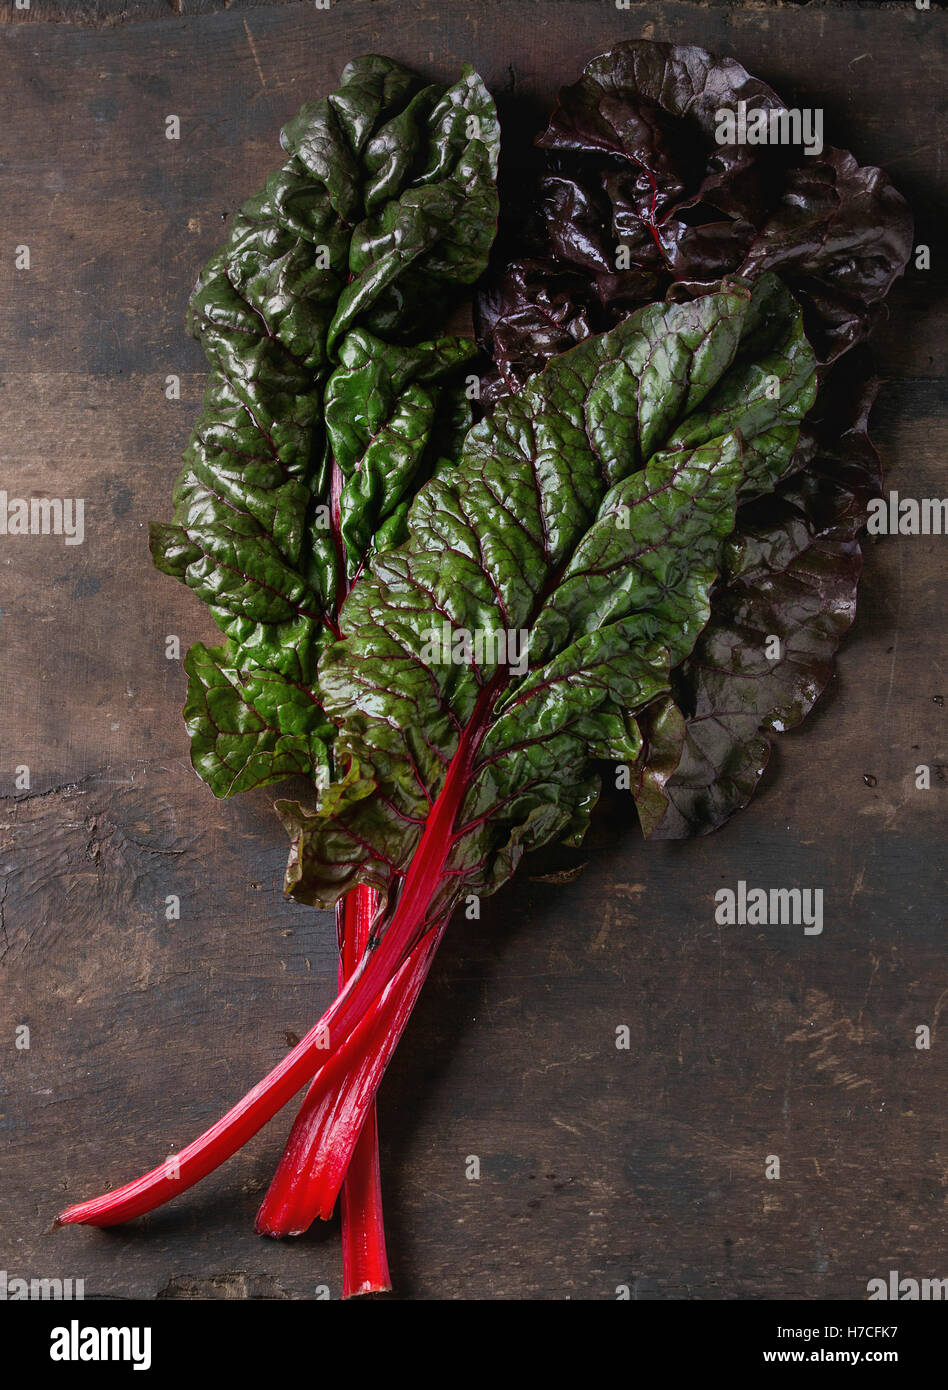 Fresh chard mangold salad leaves over old dark wooden background. Top view with space for text. Healthy eating theme. - Stock Image